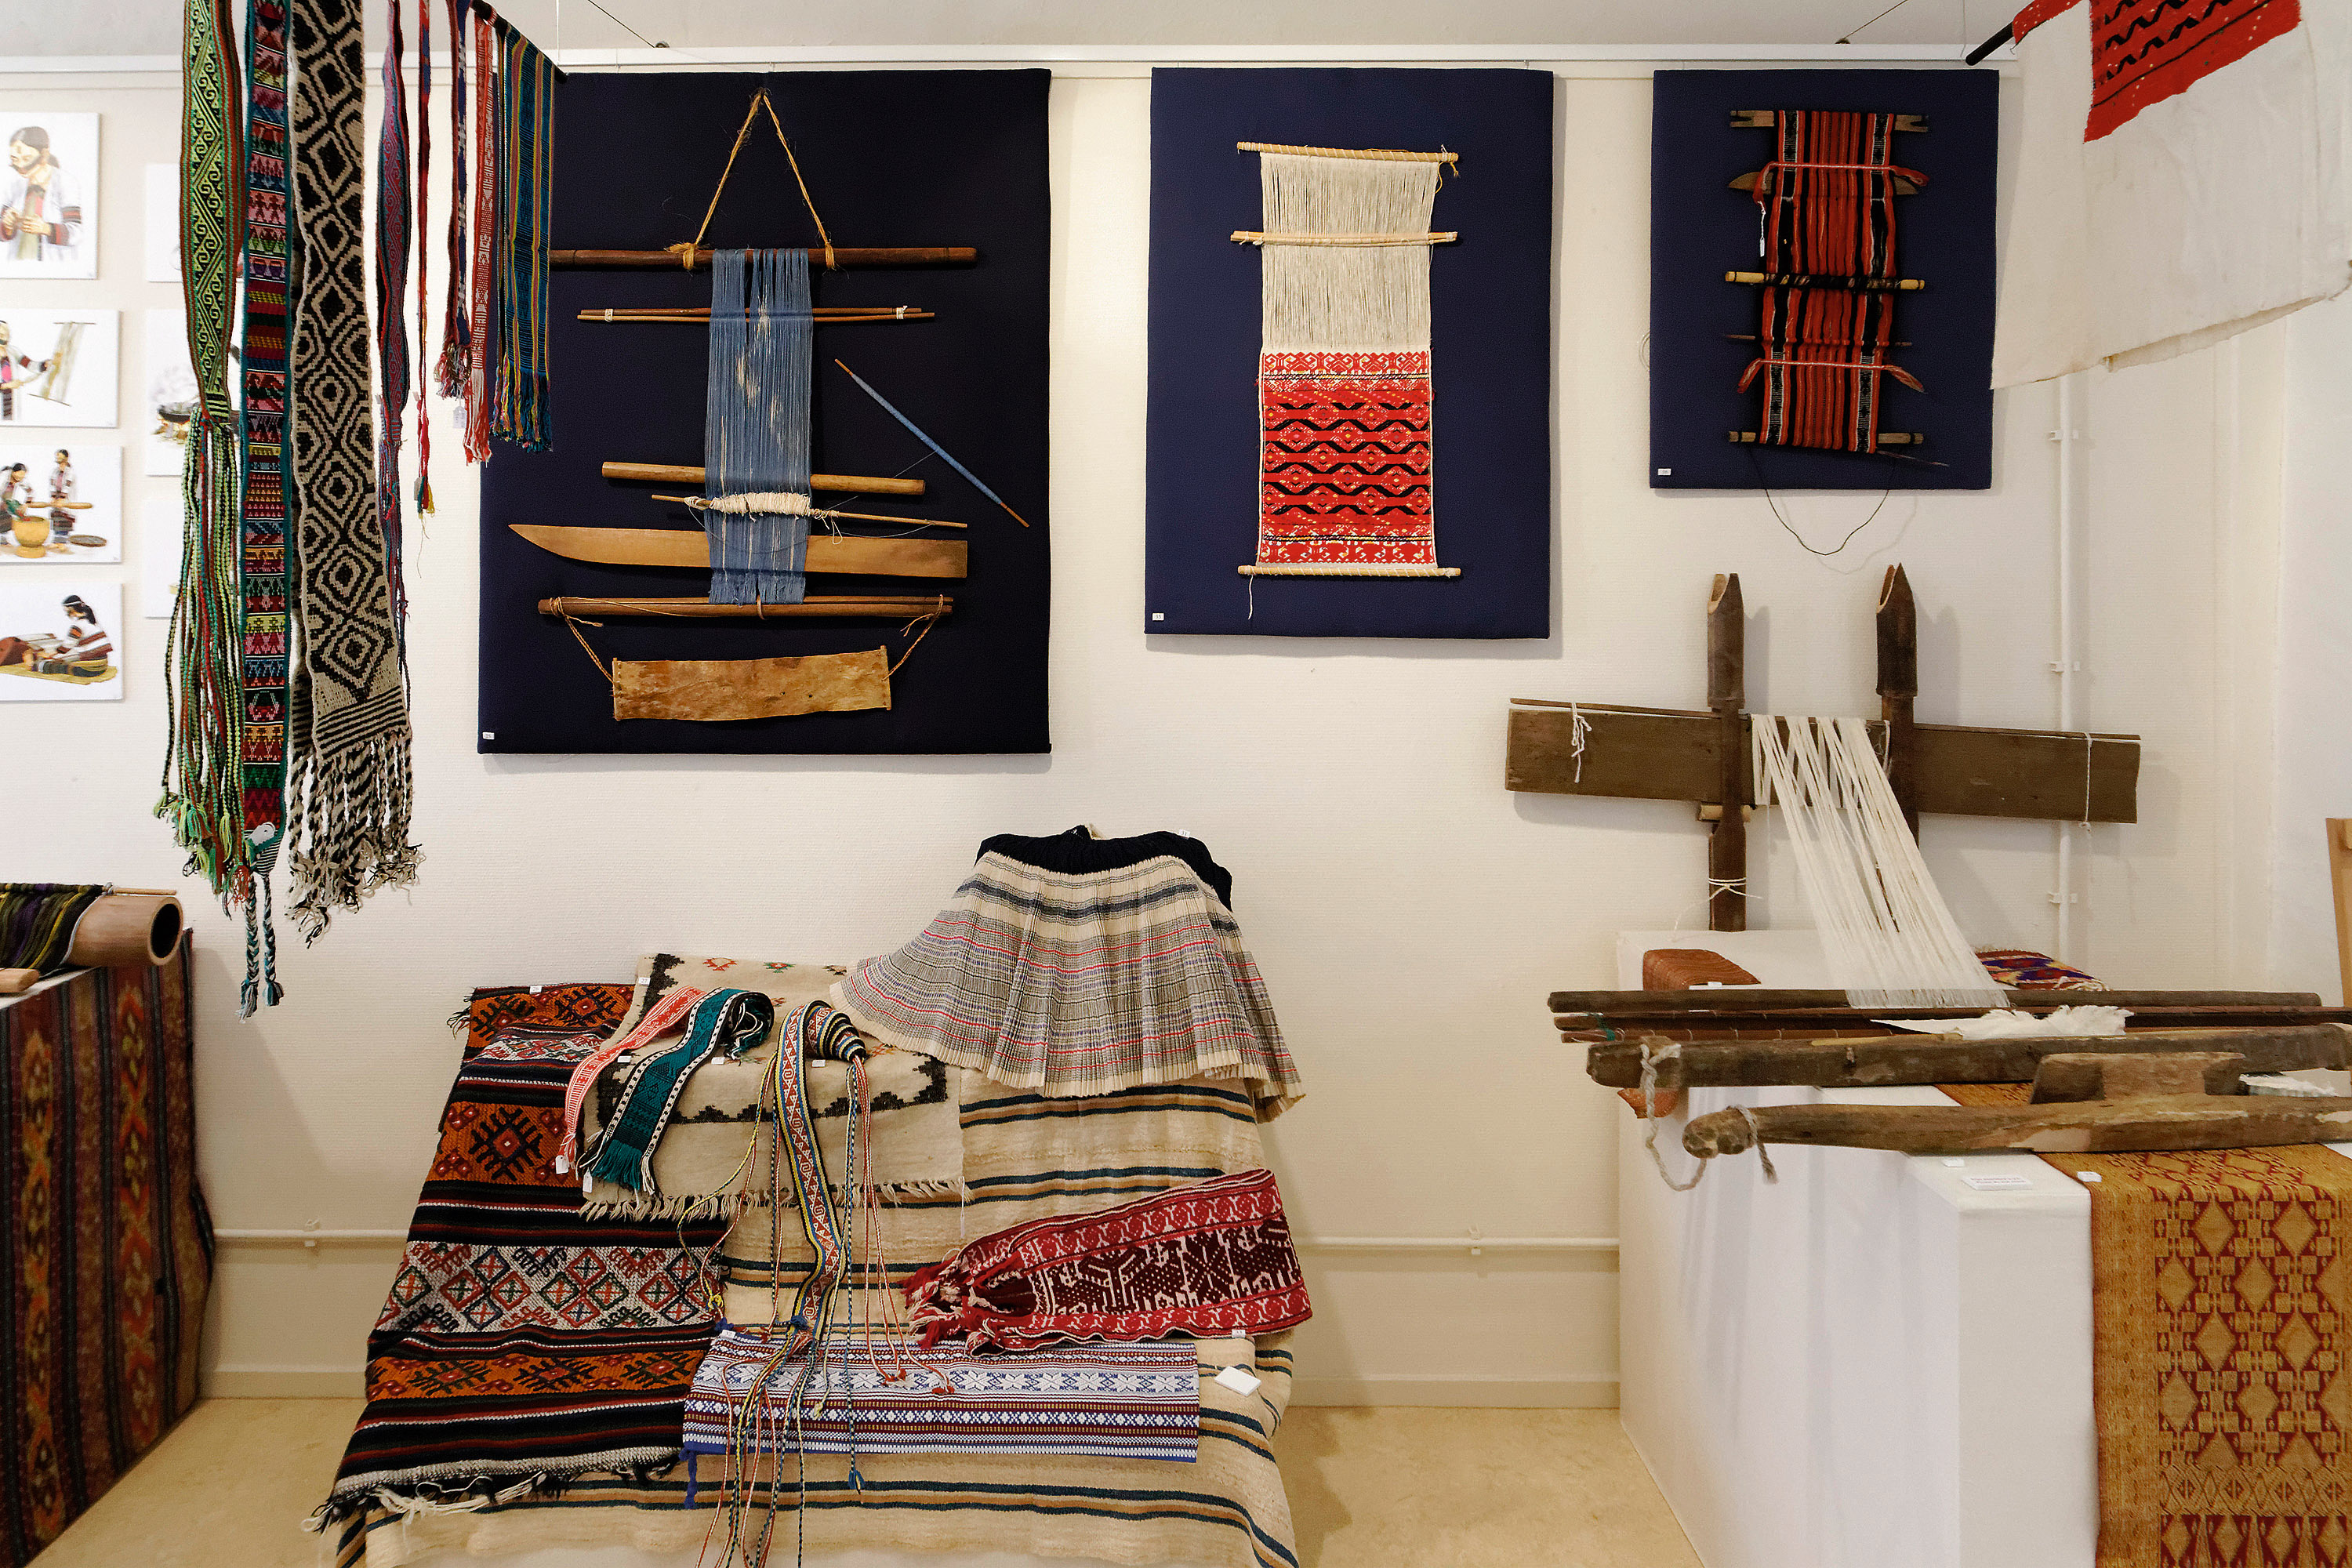 TRC exhibition Weaving the World. Photograph: Joost Kolkman.